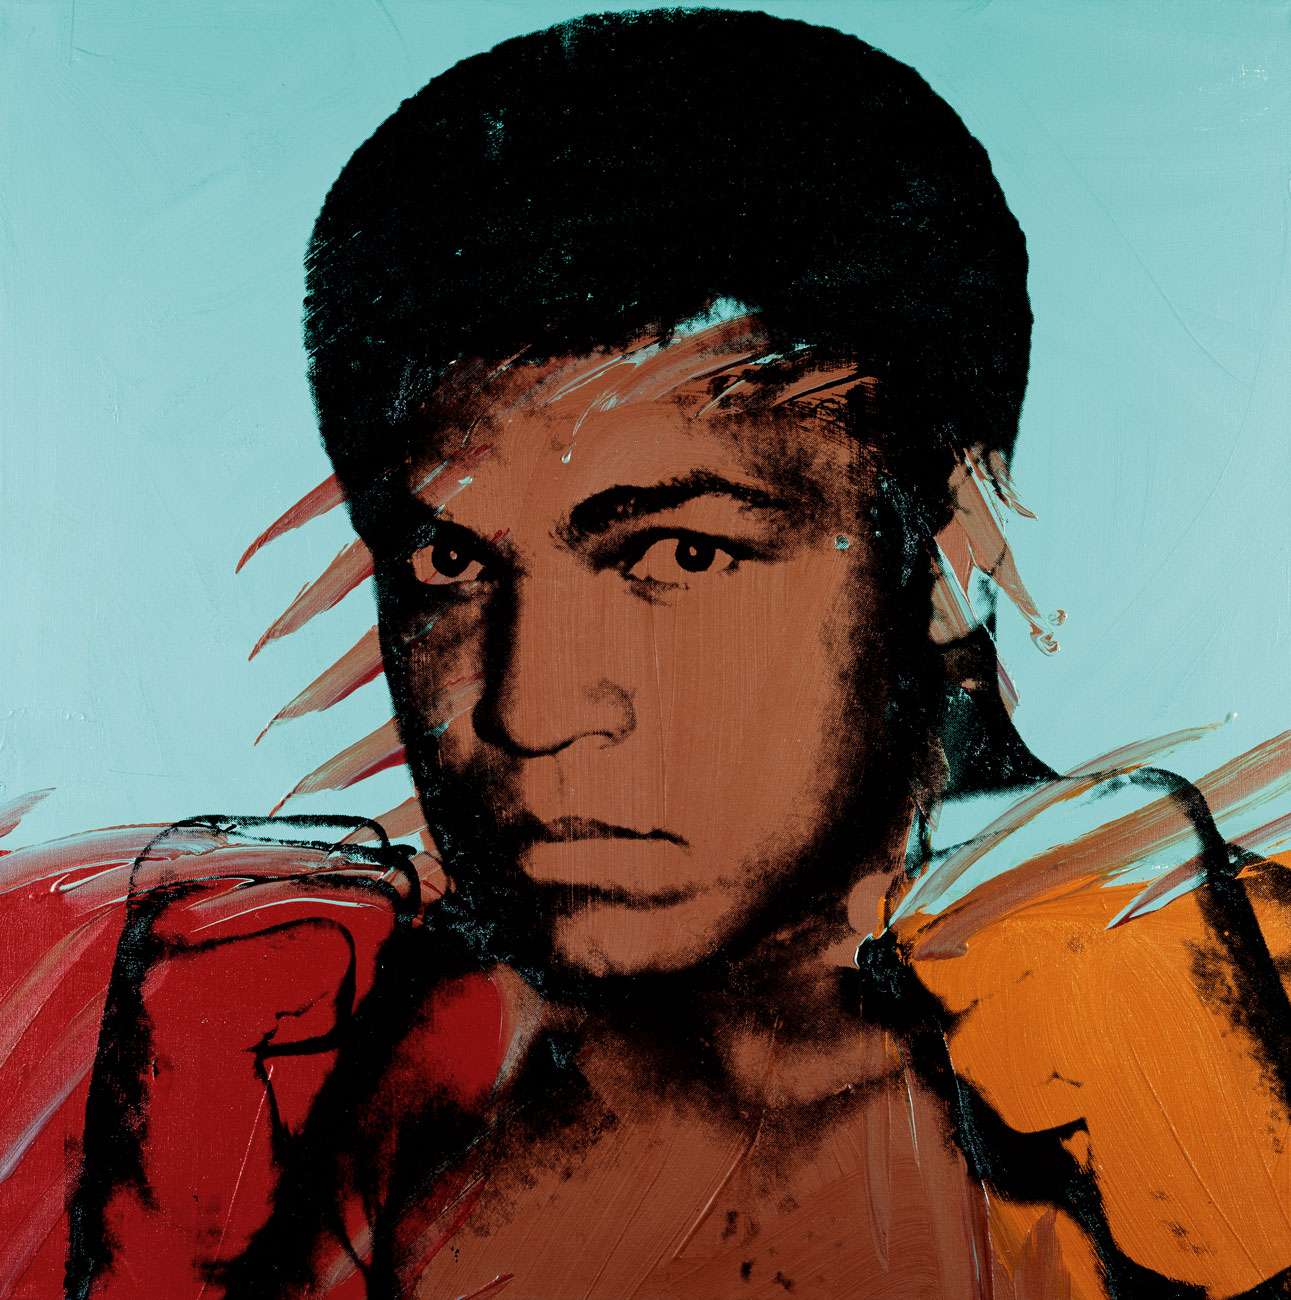 Andy Warhol, Muhammad Ali, fall 1977, acrylic and silkscreen ink on canvas, 40 x 40 inches, 101.6 x 101.6 cm. Collection of Lorenzo and Teresa Fertitta